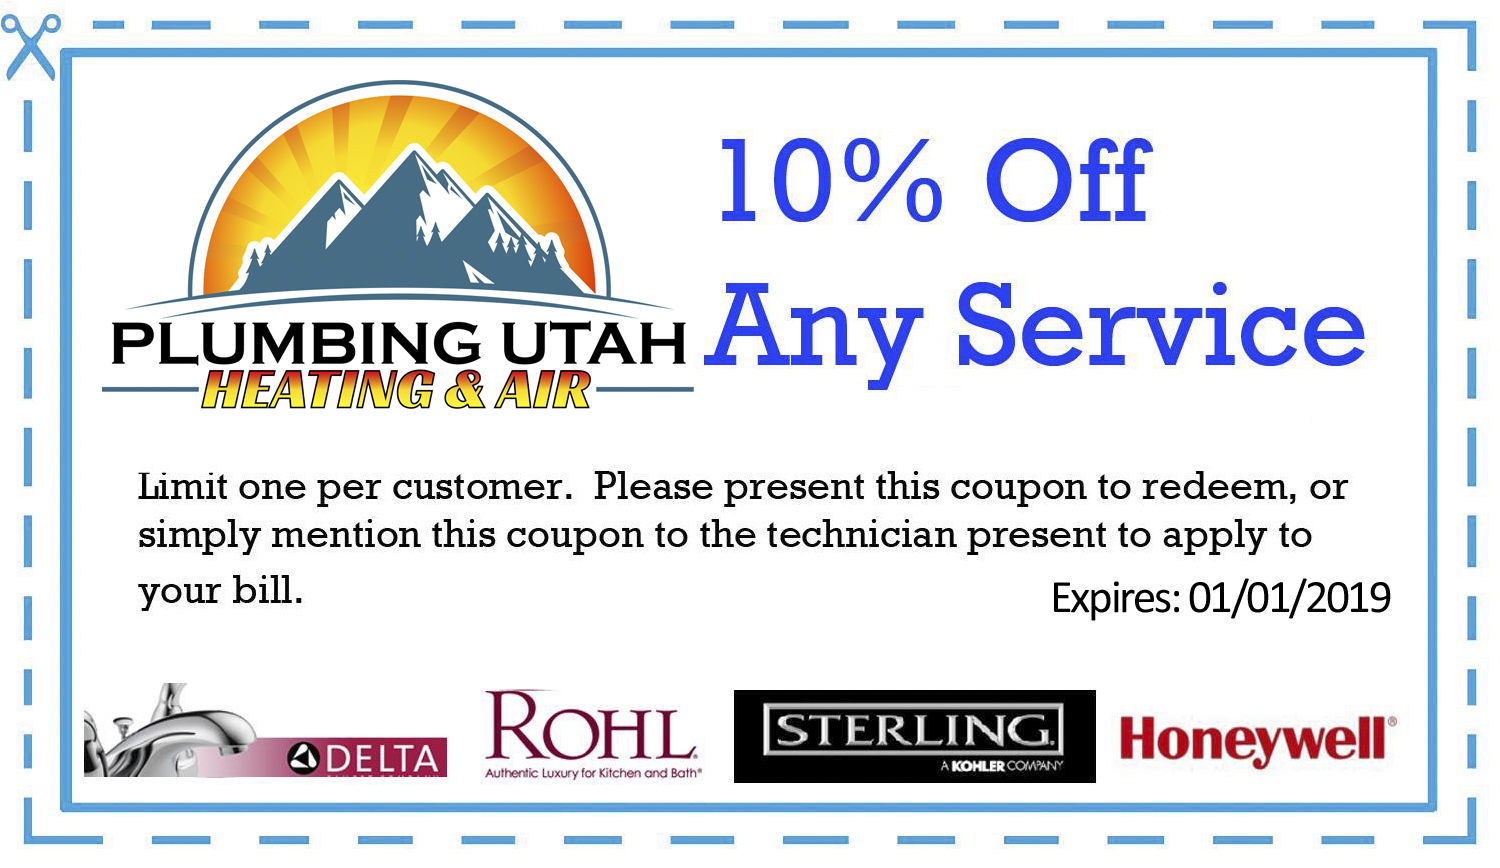 plumbing-utah-heating-air-plumbing-percent-coupon-final